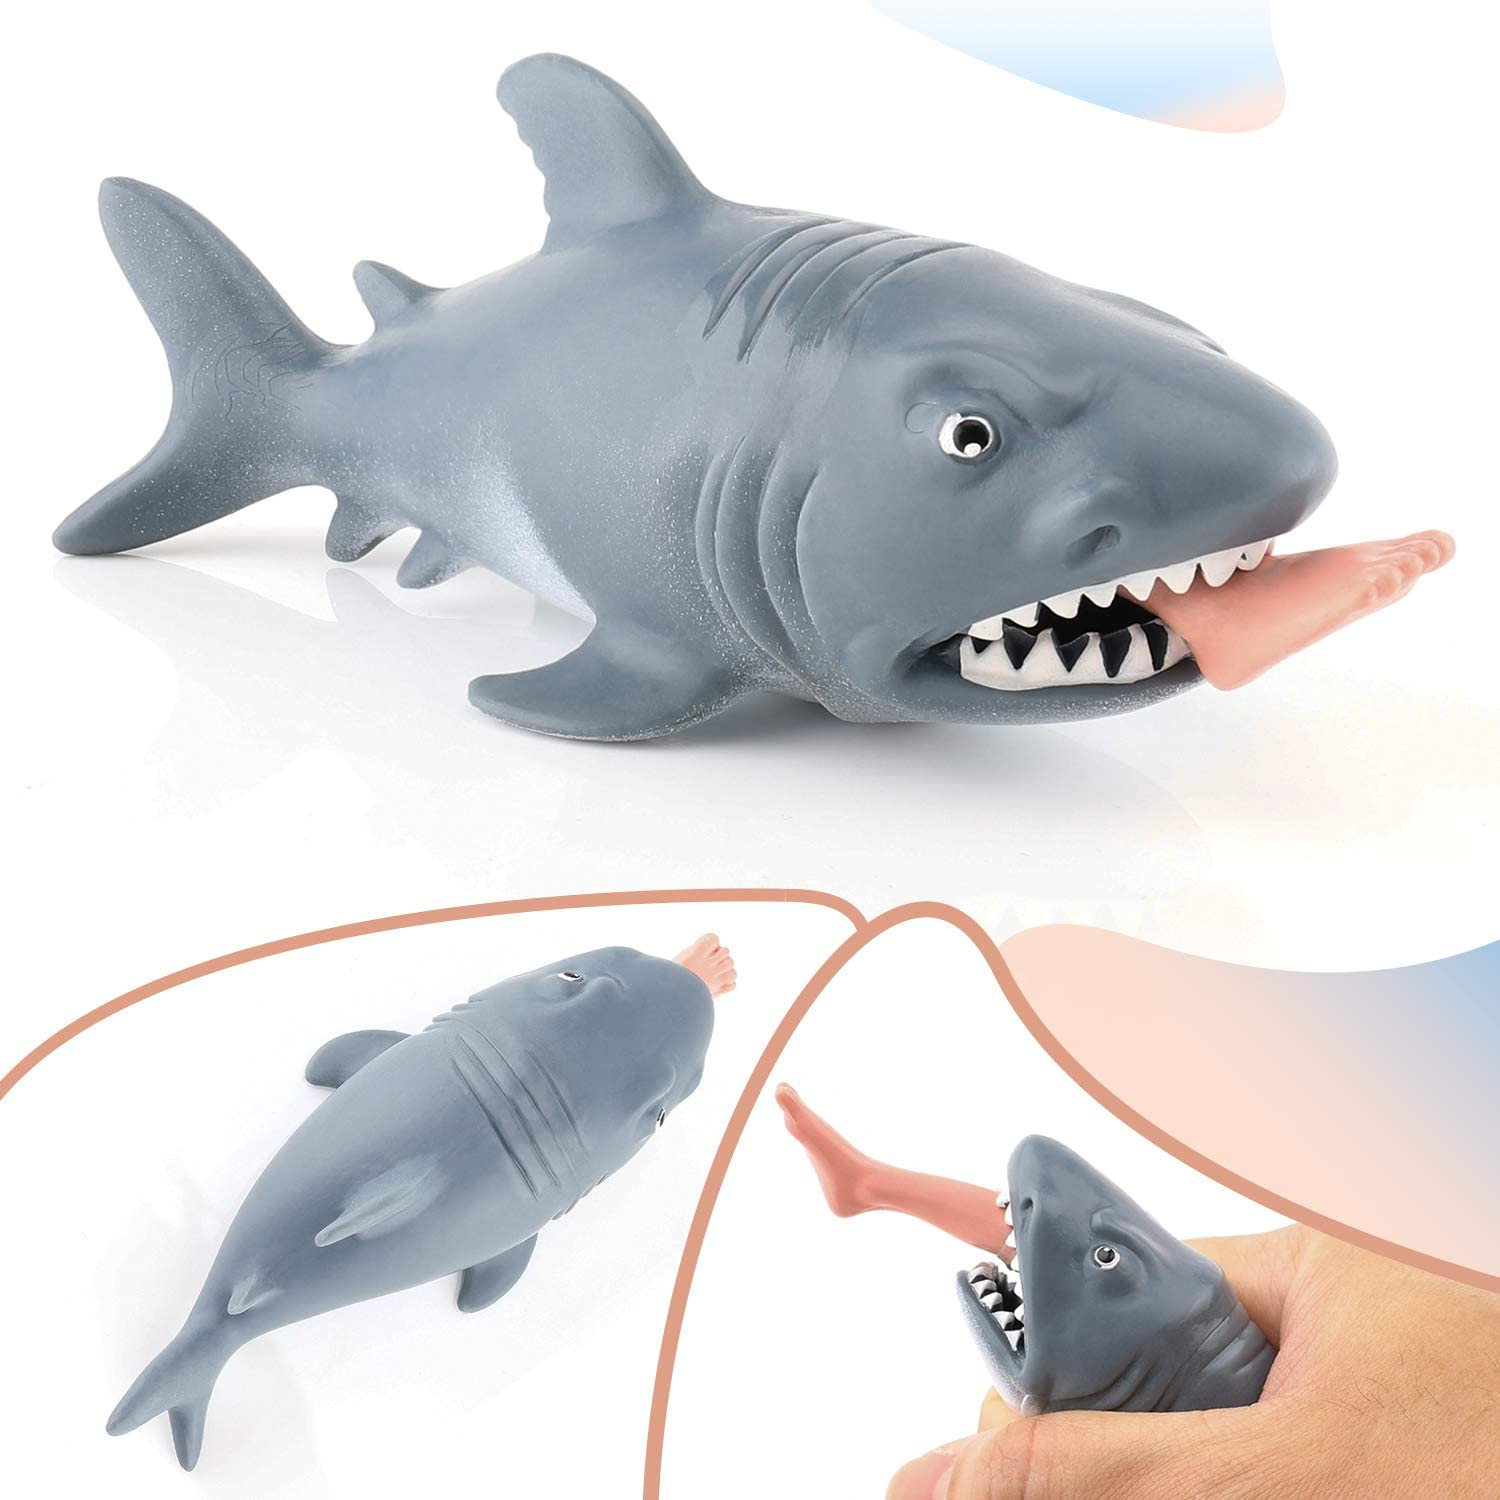 Squeeze Toys Stress Relief Toys for kids and Adults, Gem Toys Funny Shark Toys Practical Joke Toys , Great stress toys for Anxiety